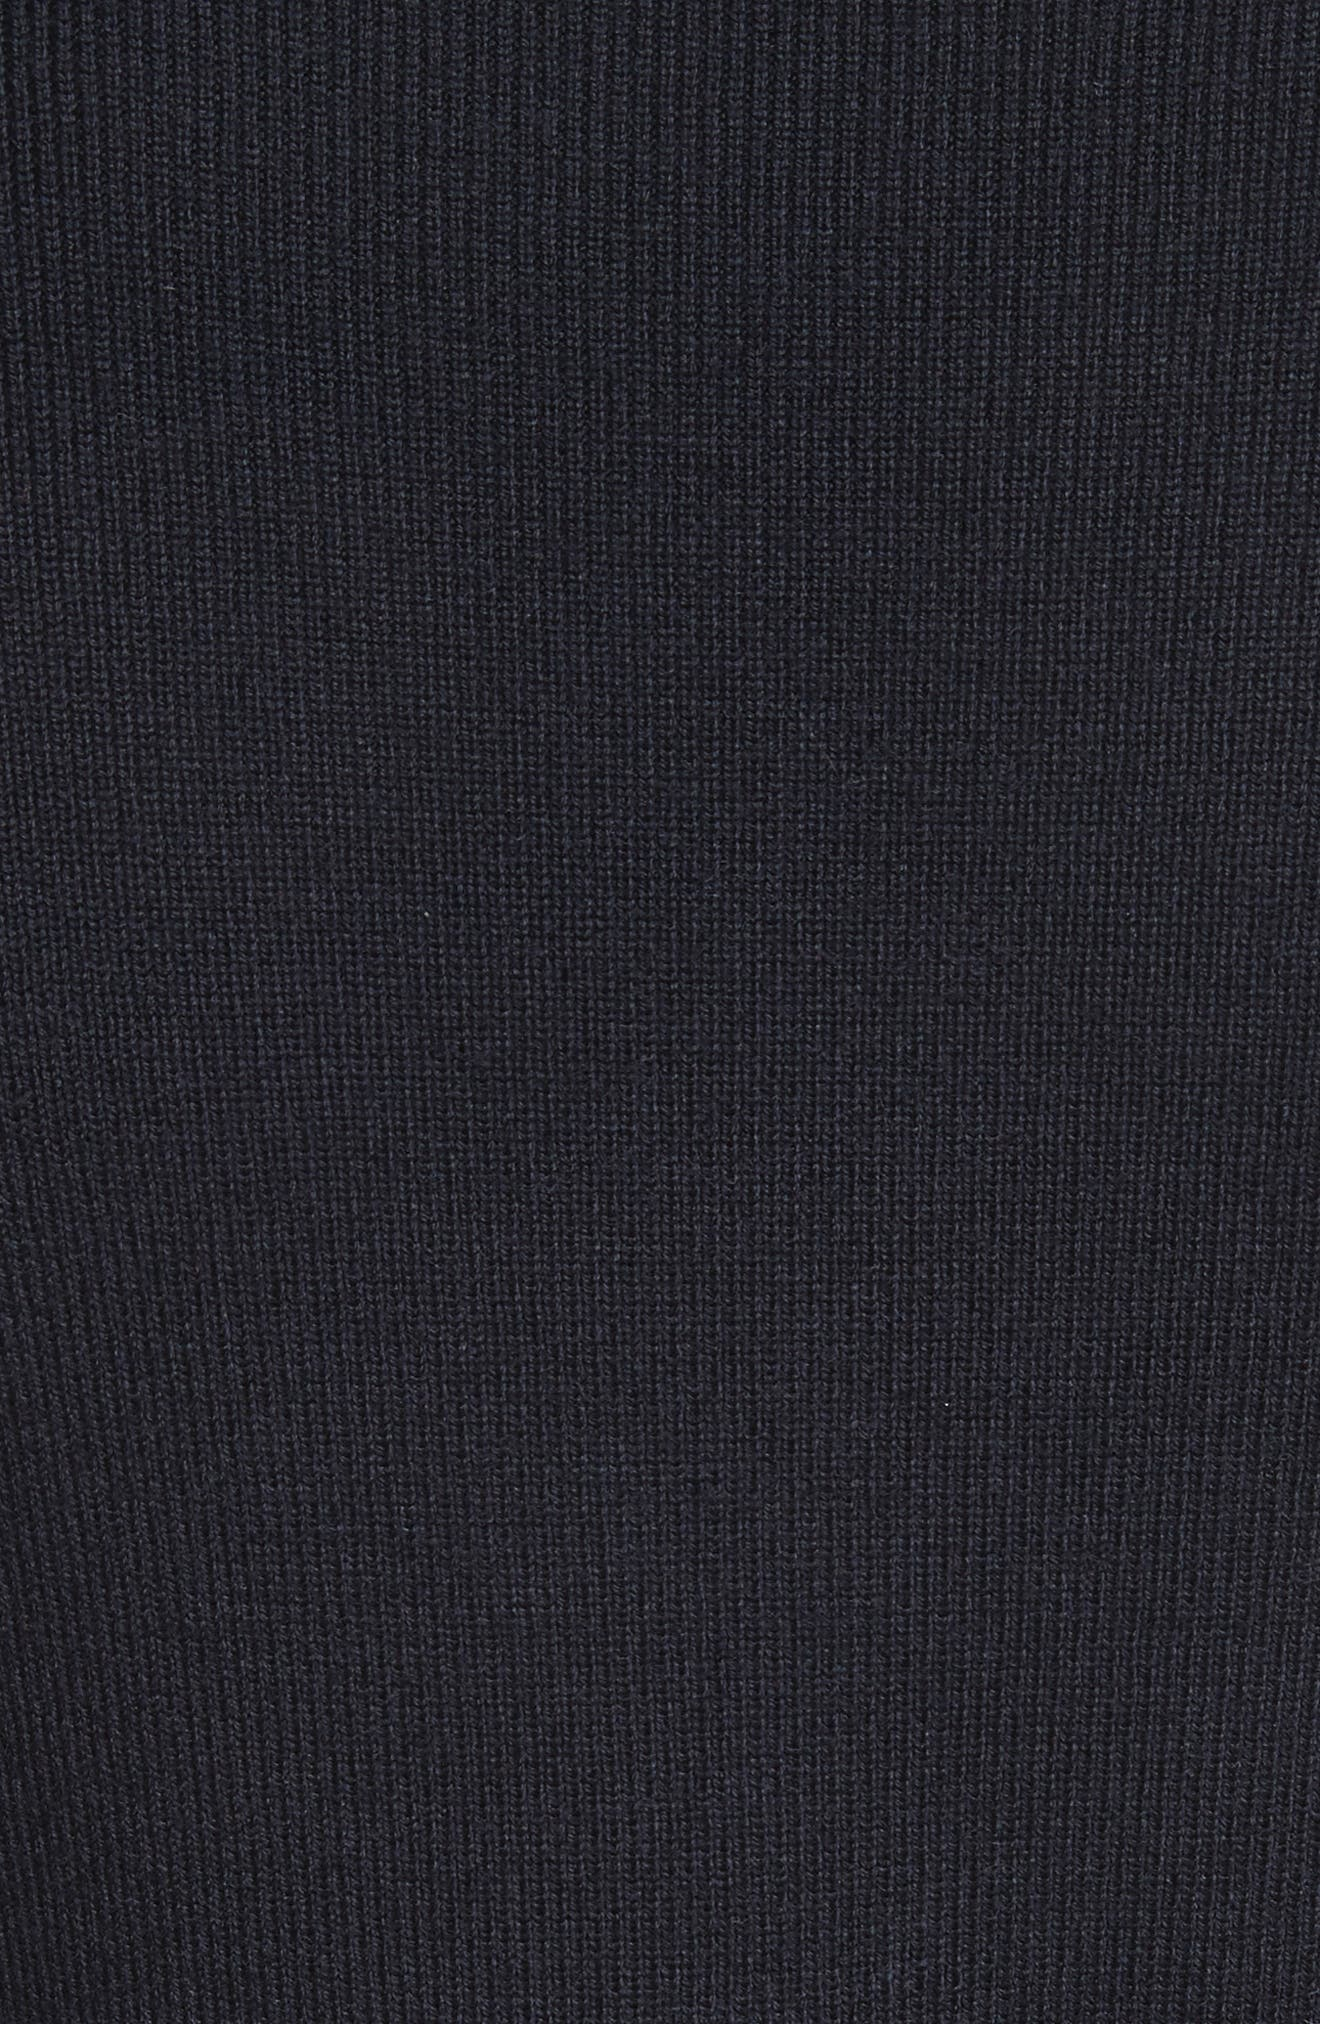 Lara Sweater Dress,                             Alternate thumbnail 5, color,                             Medium Navy